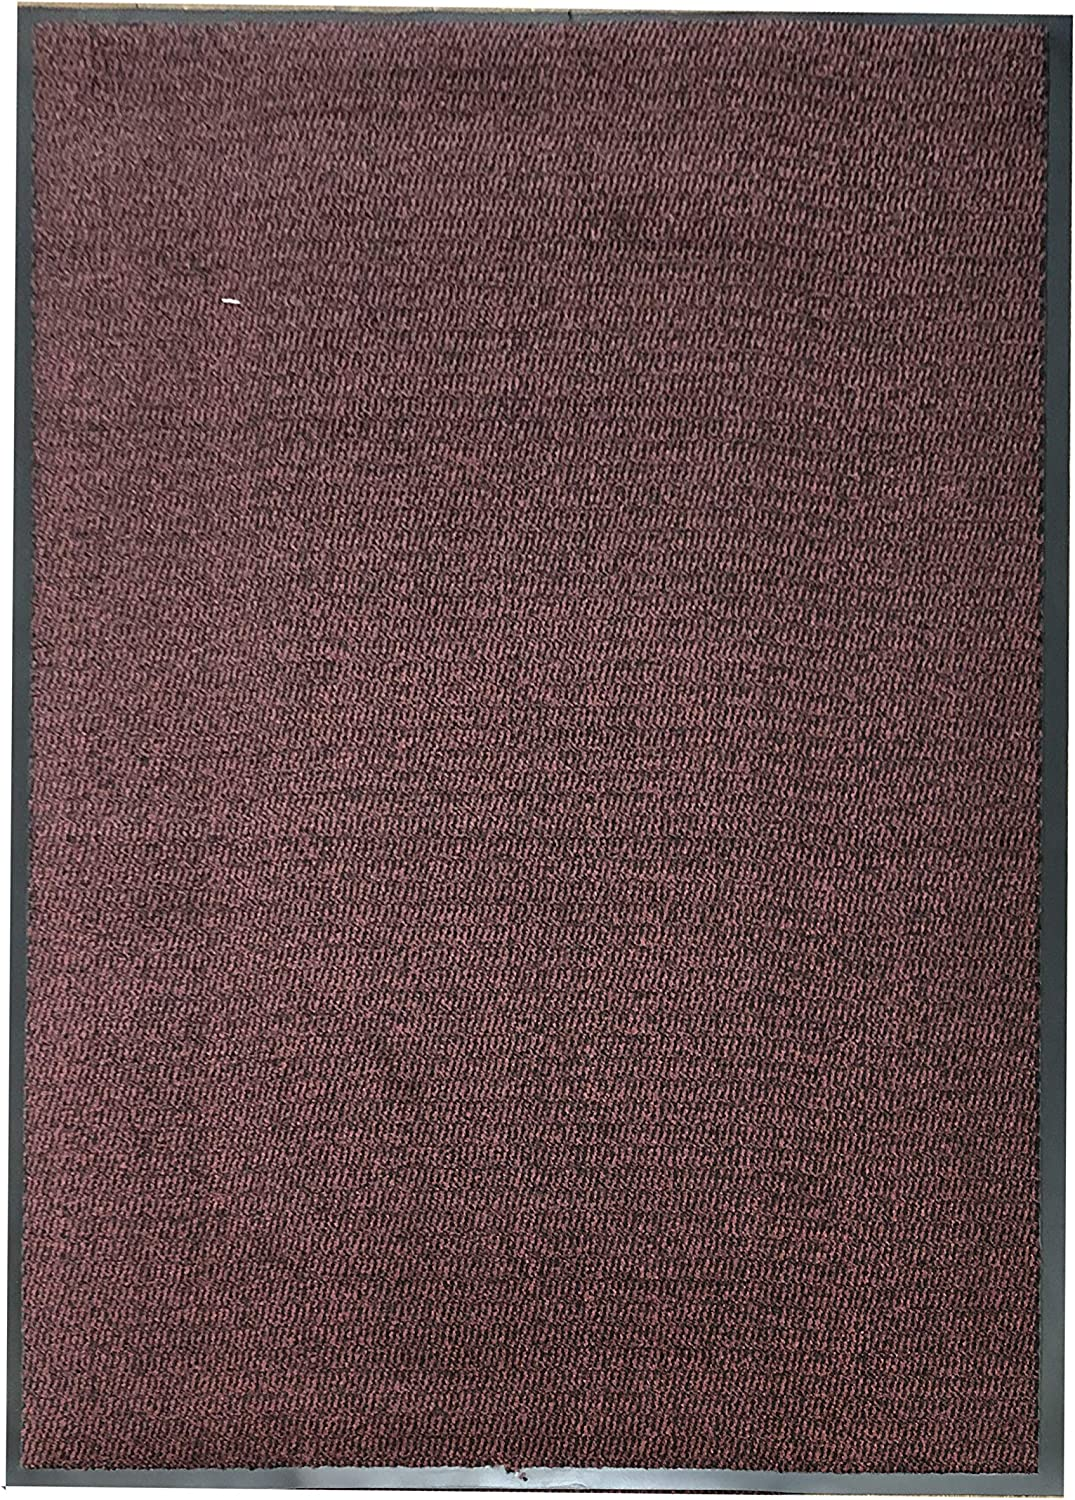 UAREHOME HEAVY DUTY NON SLIP BARRIER MAT LARGE SMALL RUGS RUNNER KITCHEN DOOR HALL 60x180, Red